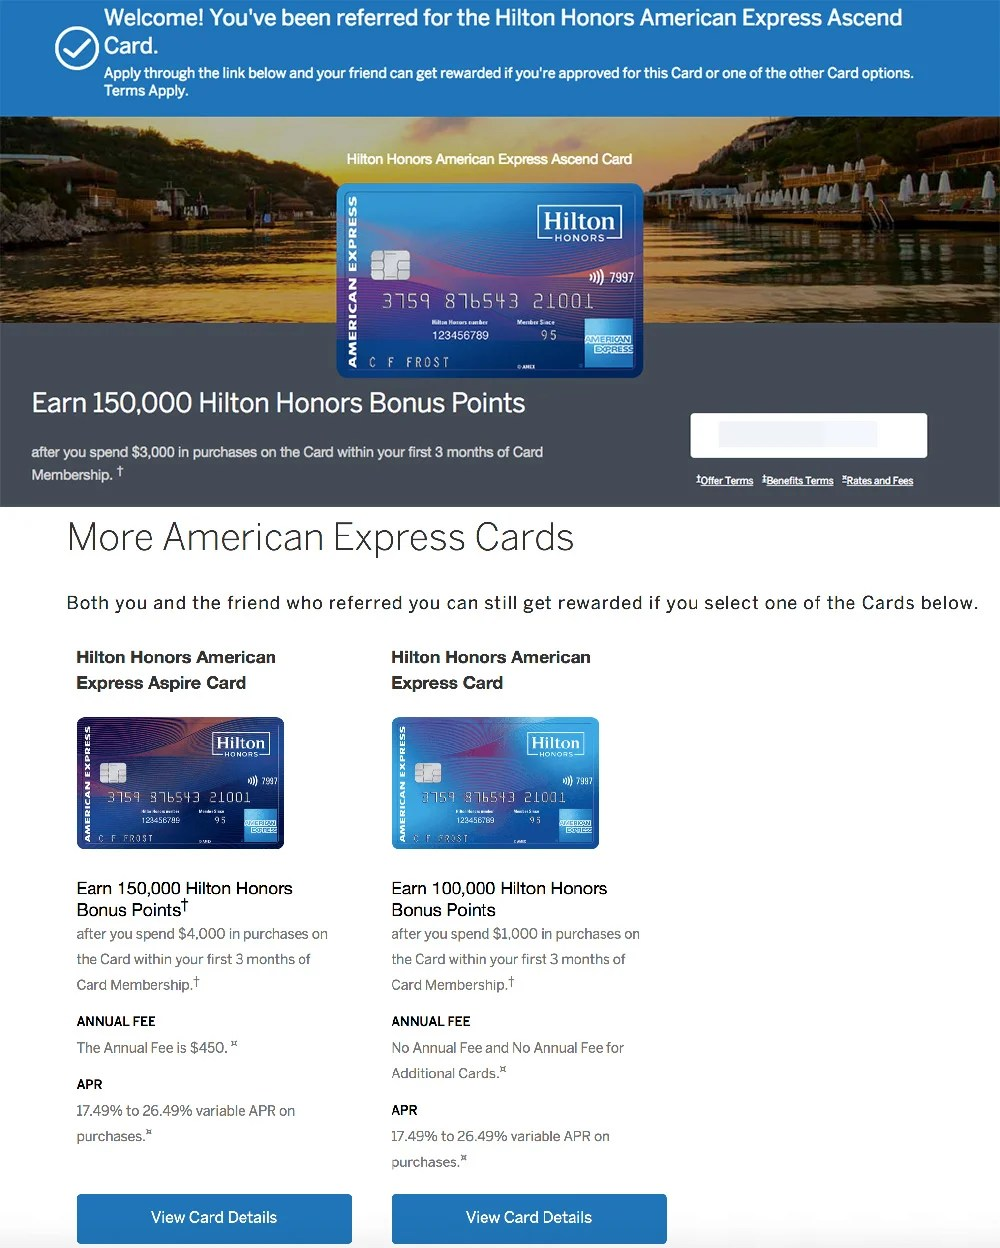 Amex Expands Refer-a-Friend Program, Increases Welcome